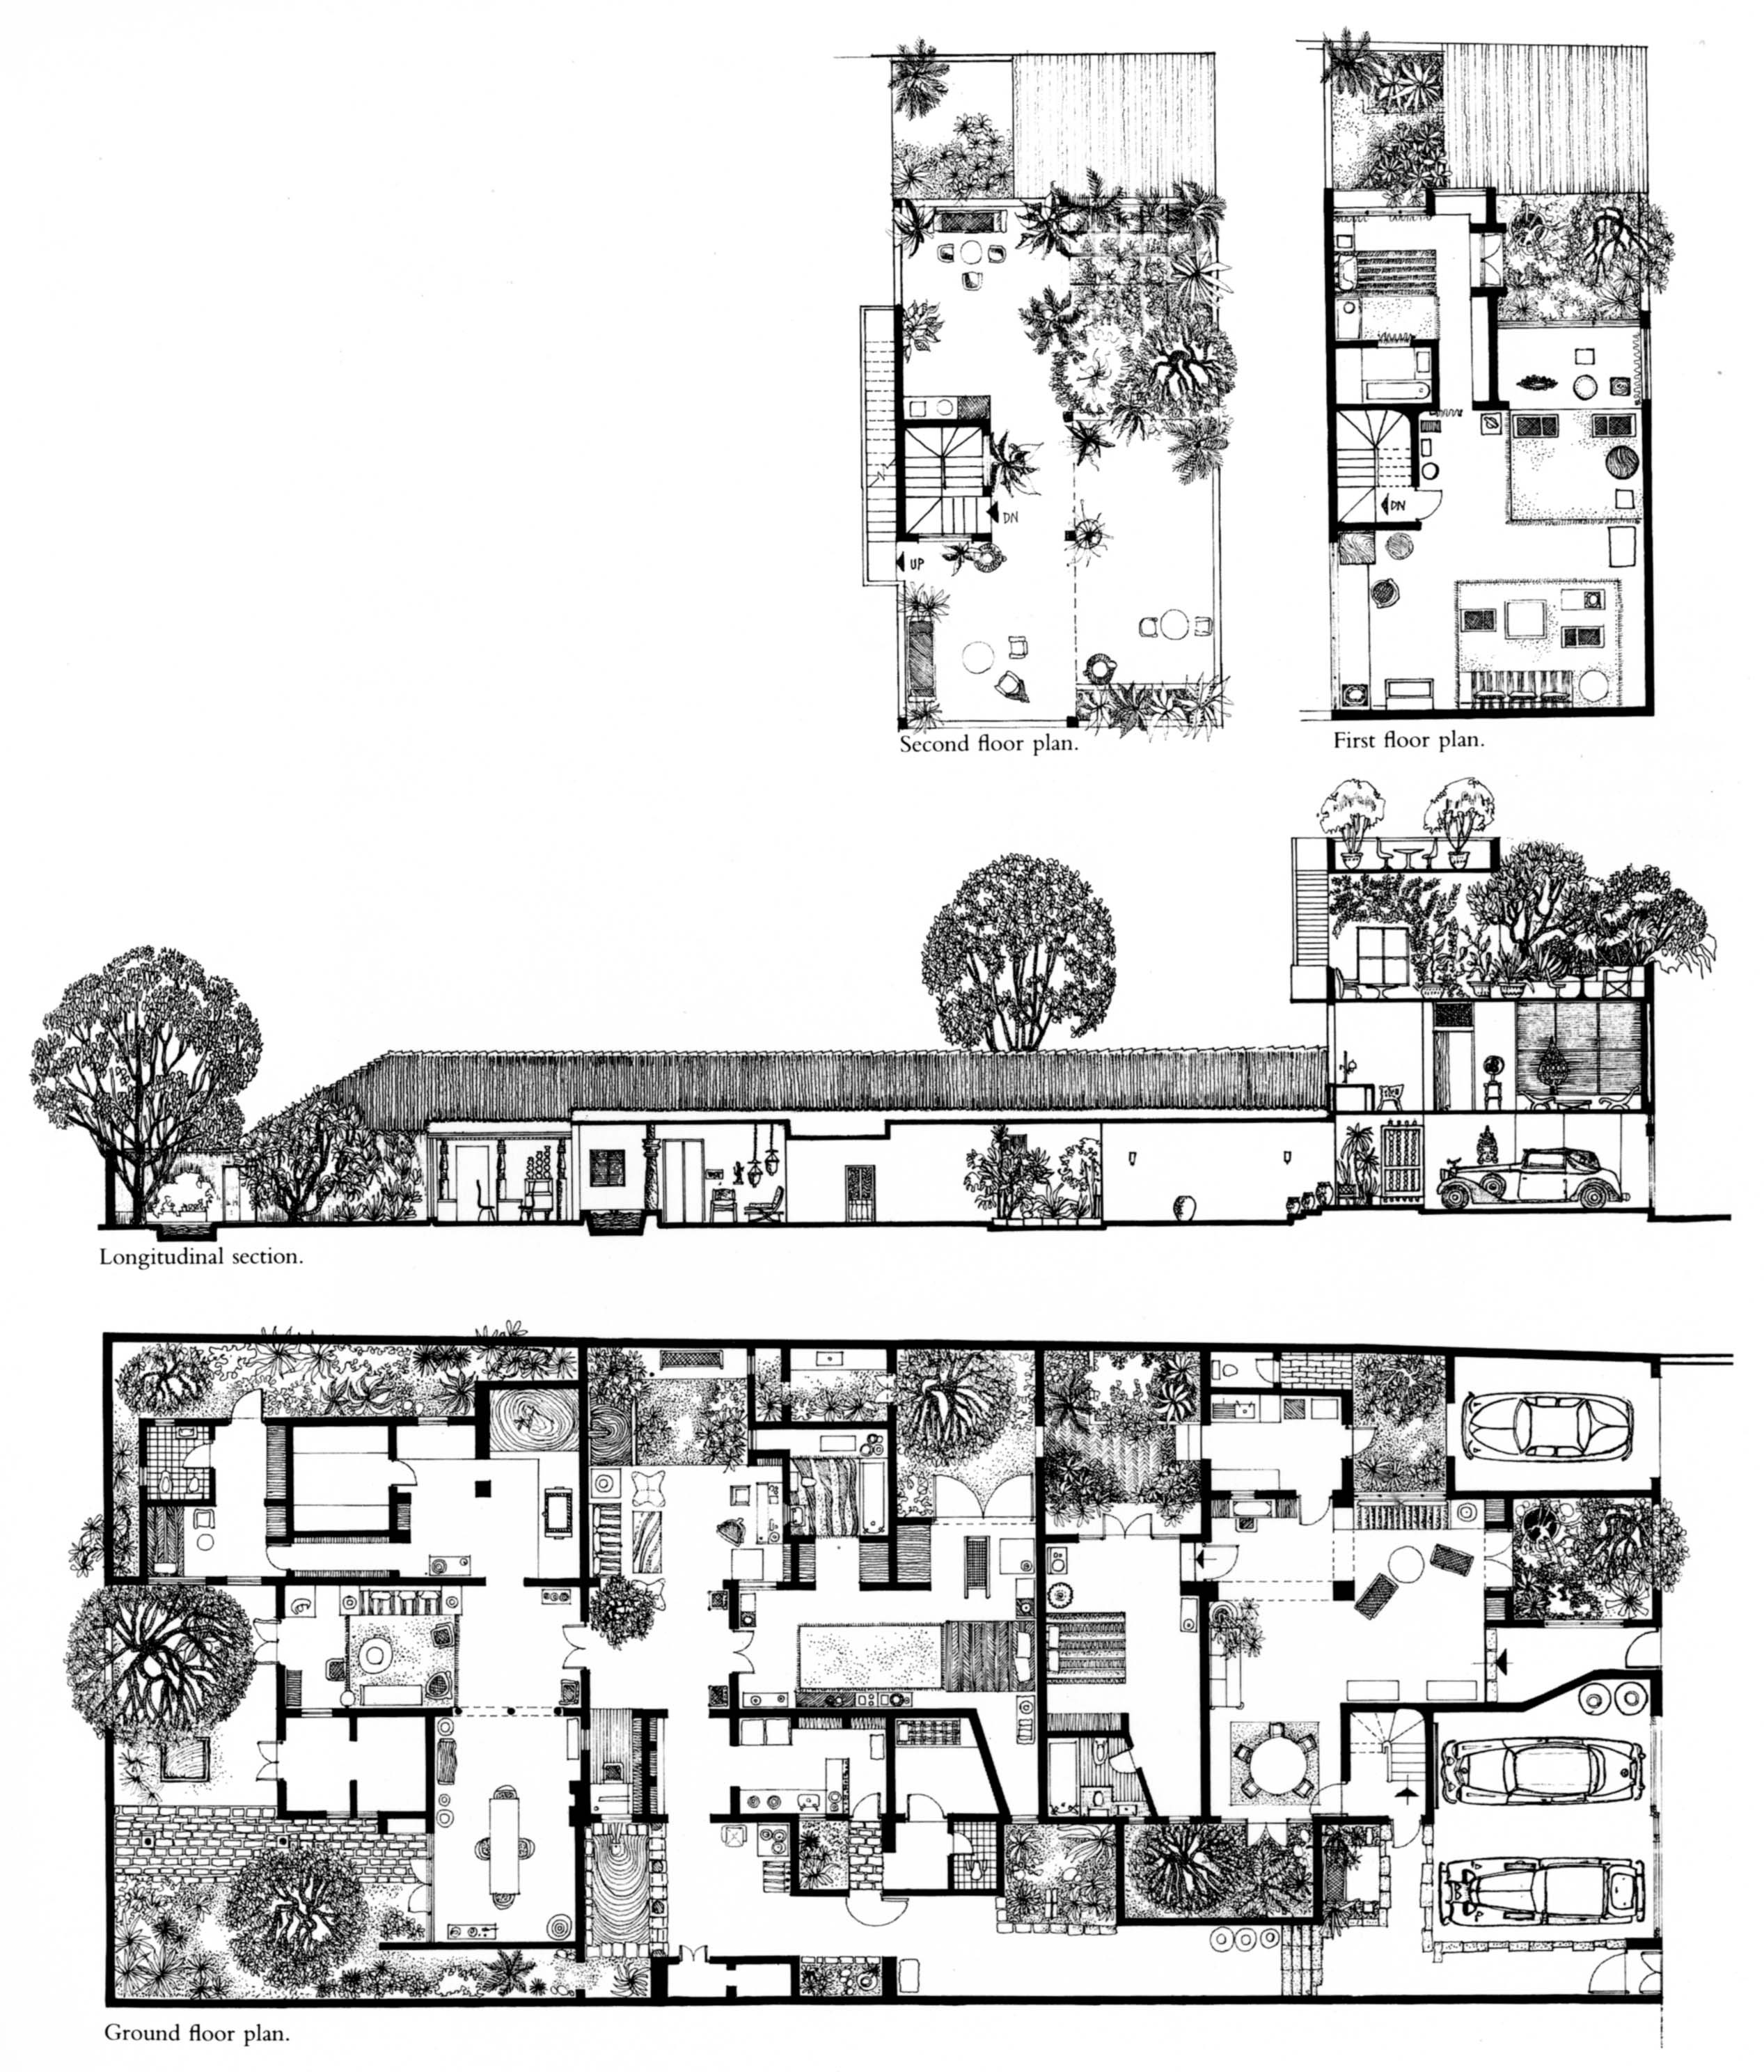 First and second floor plans click to enlarge